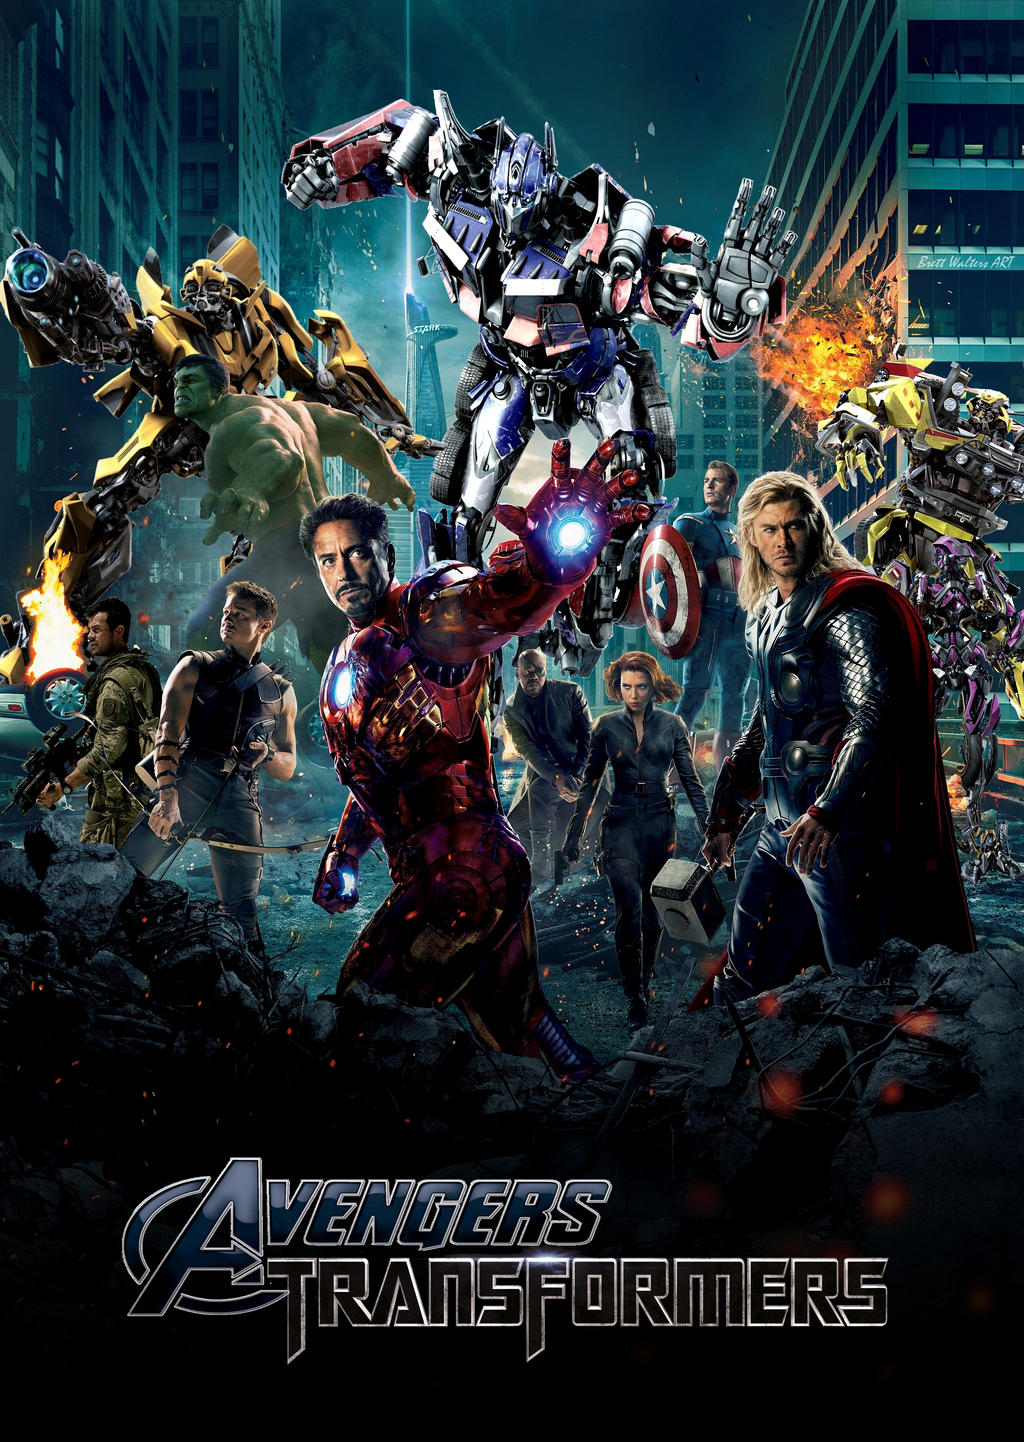 Transformers 5 Poster Avengers transformers posterTransformers 5 Poster